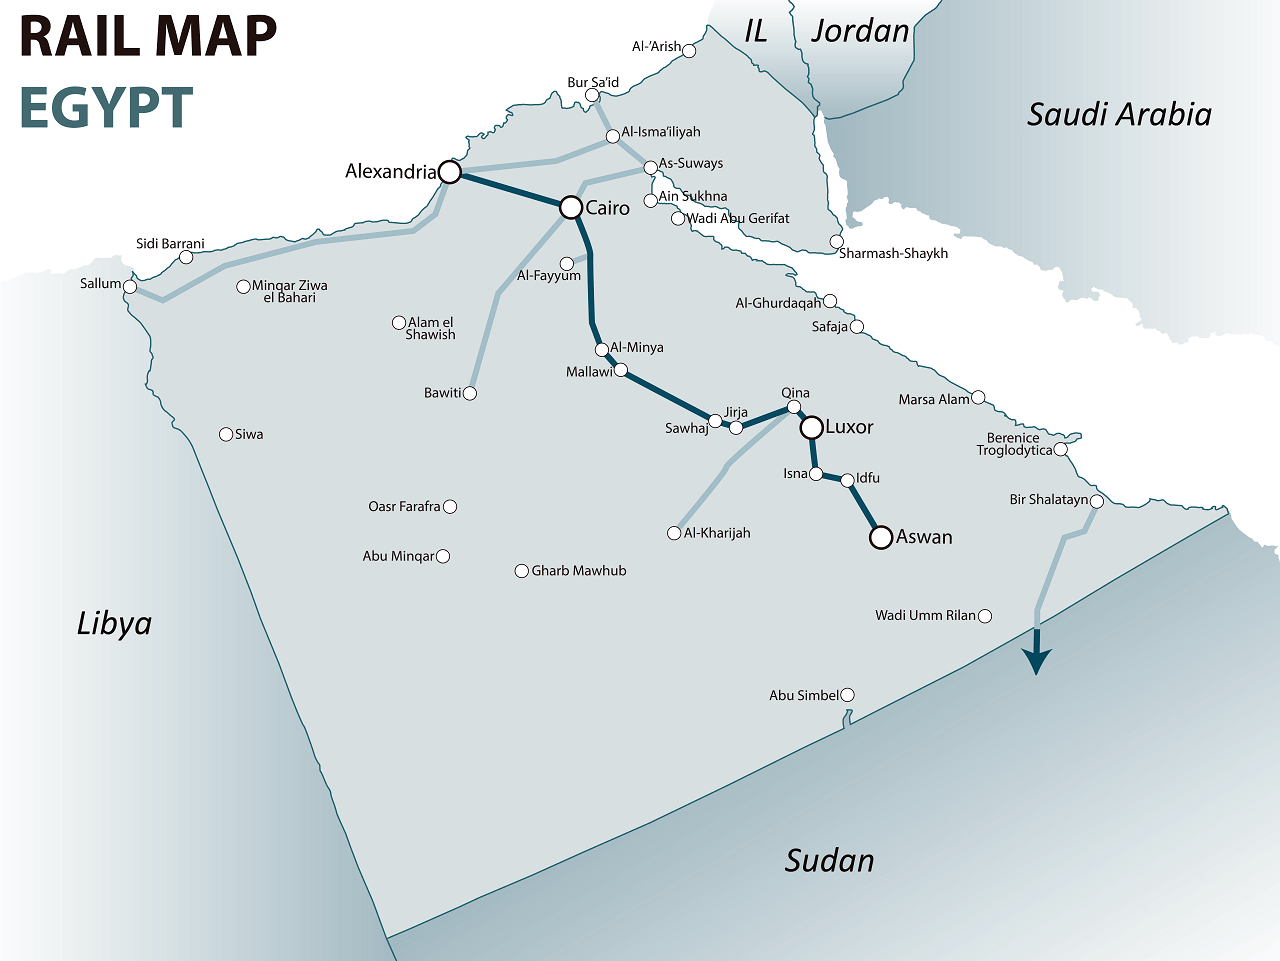 Egypt rail map